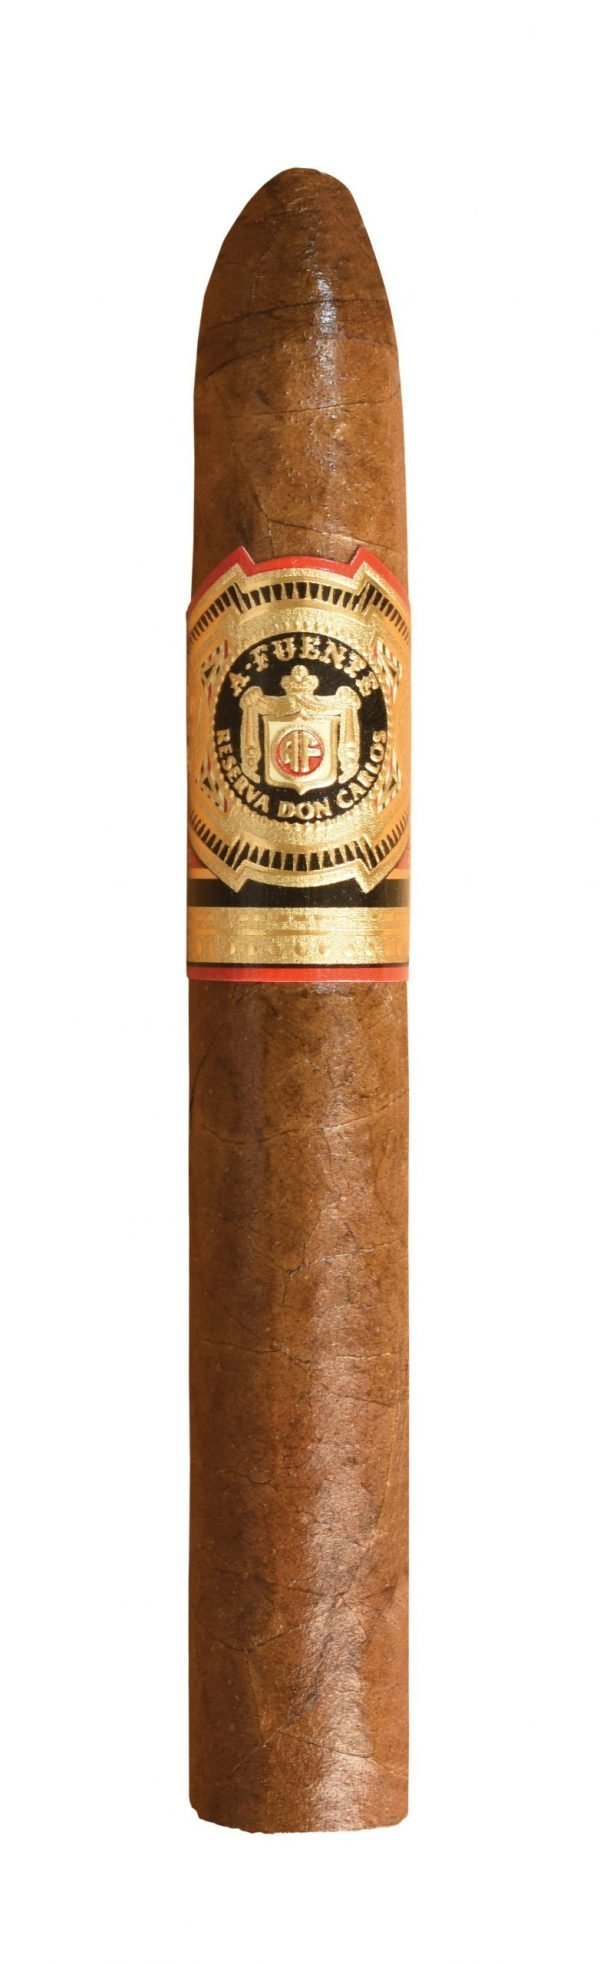 arture fuente don carlos number 4 single cigar